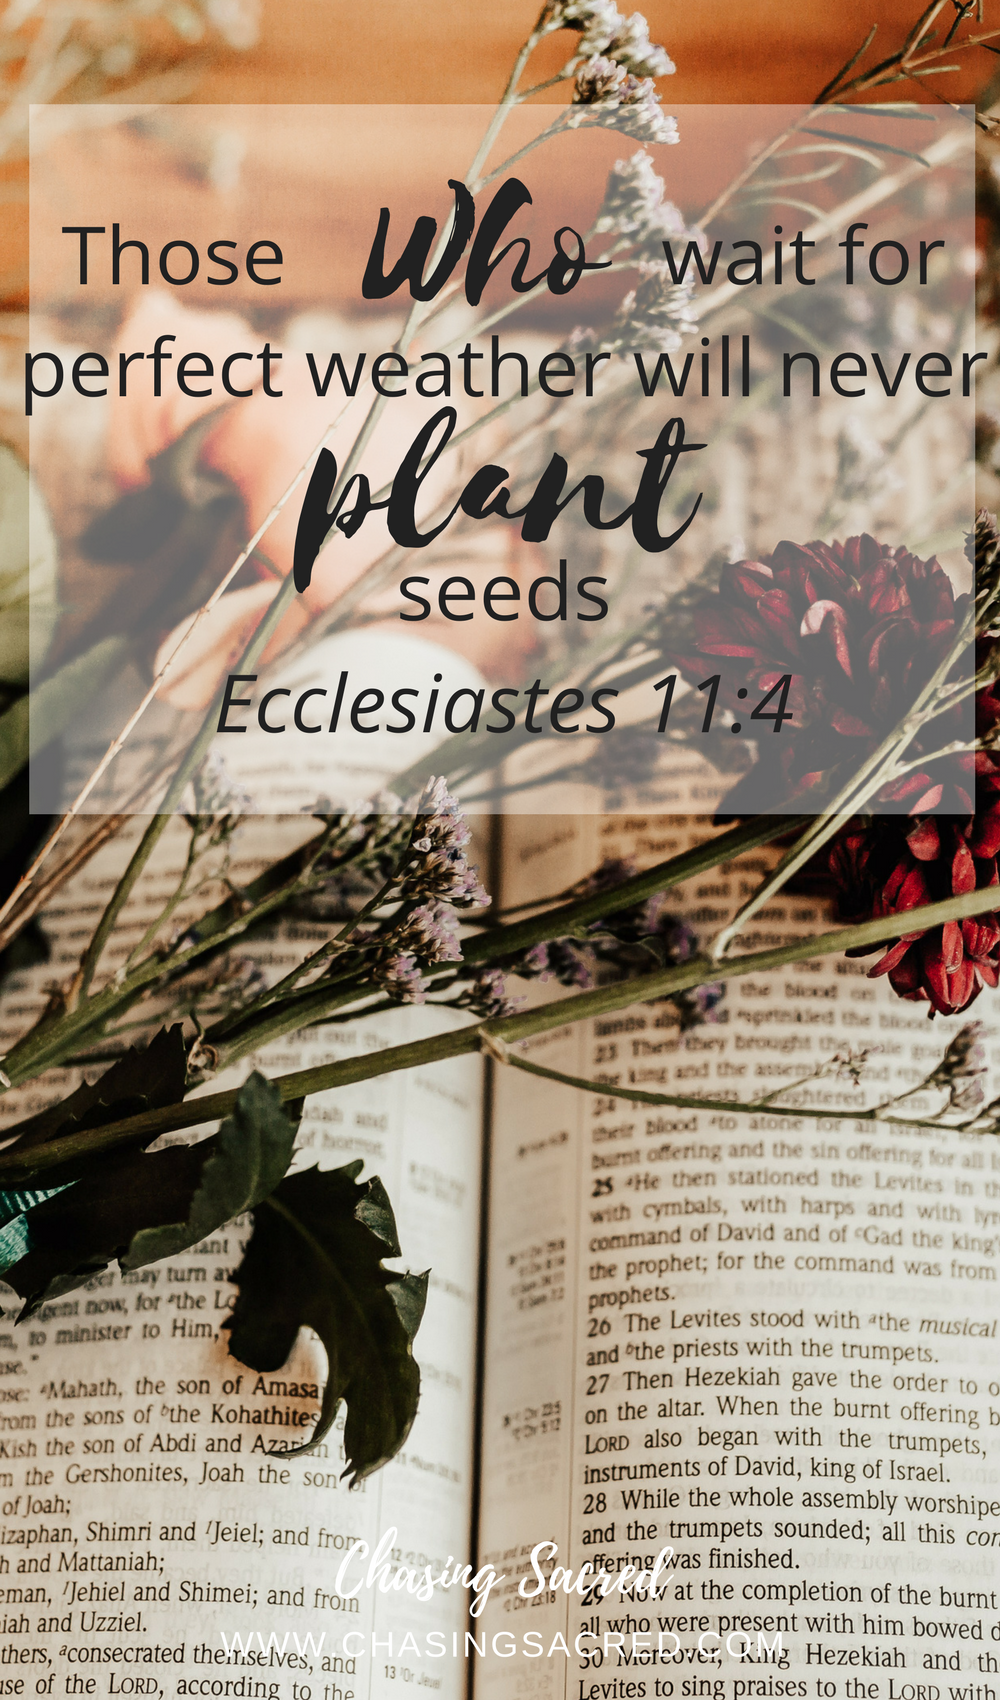 Those who wait for perfect weather will never plant seeds | Chasing Sacred